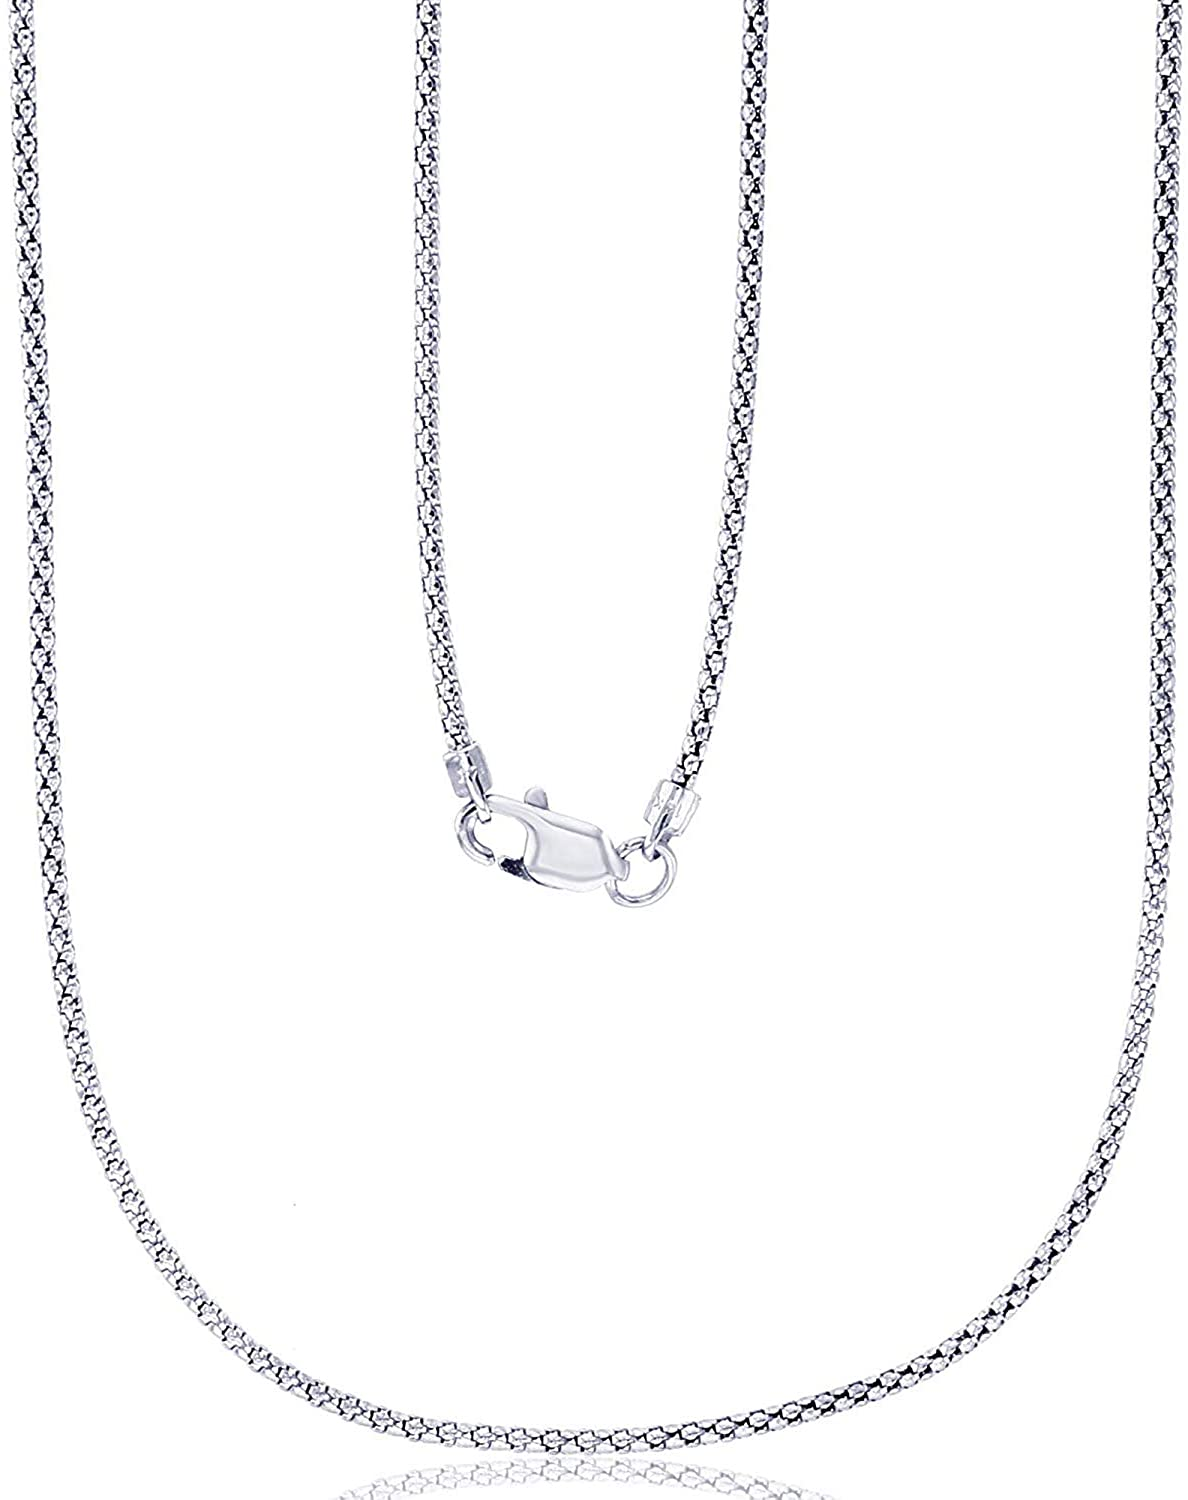 14K Yellow or White Gold Solid 1.30mm Popcorn Chain with Lobster Claw Clasp | Italian Gold Necklaces | Gold Popcorn Necklaces for Men and Women